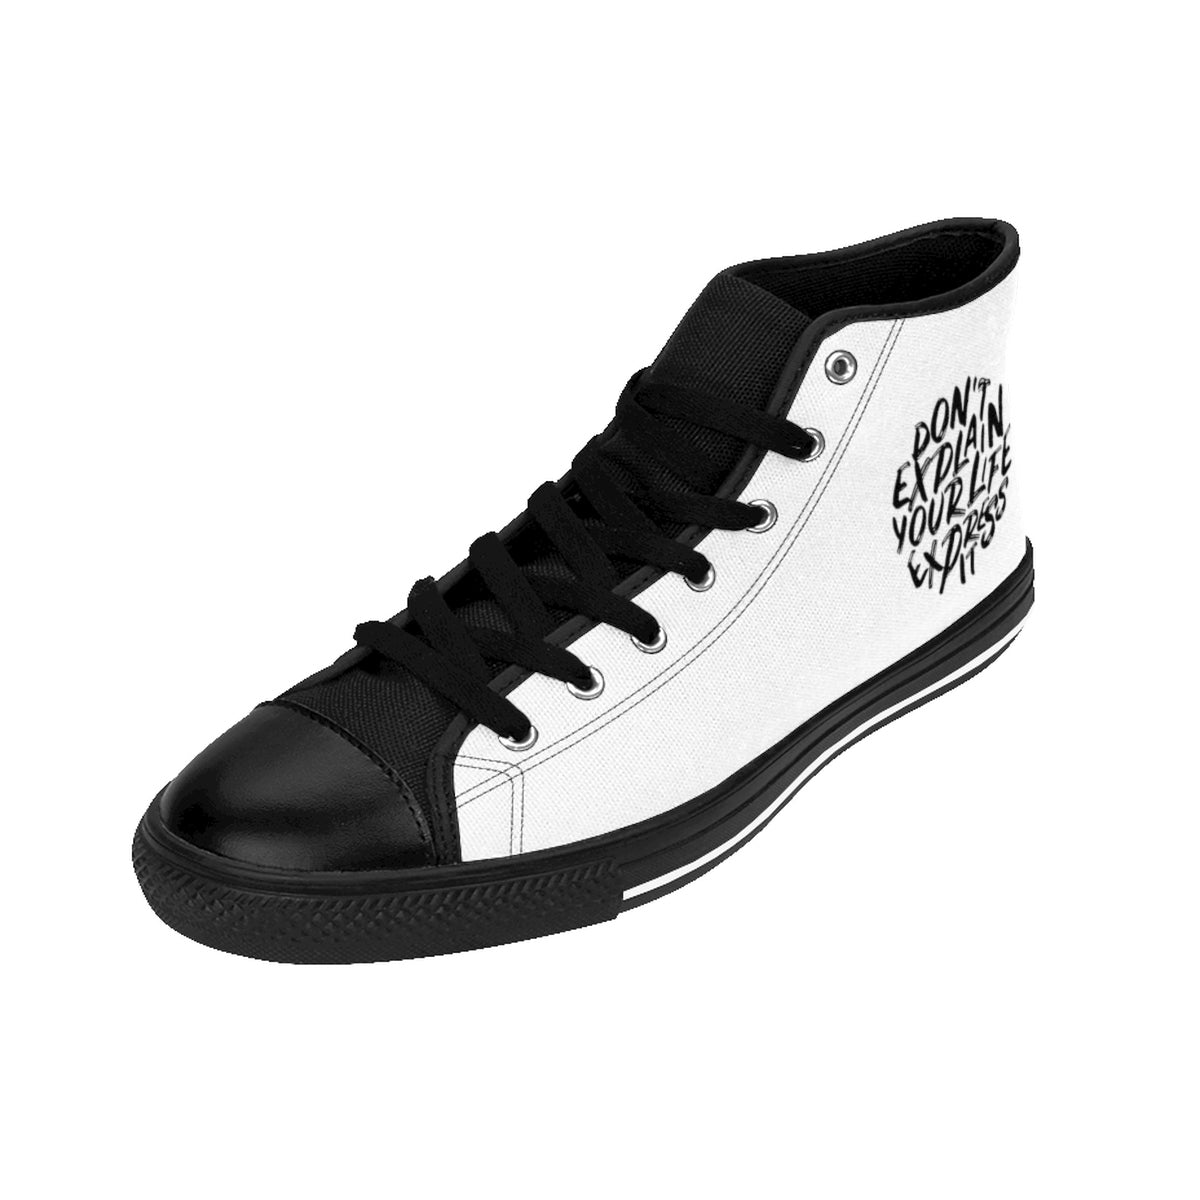 Dont Explain Your Life Express It Men's High-top Sneakers